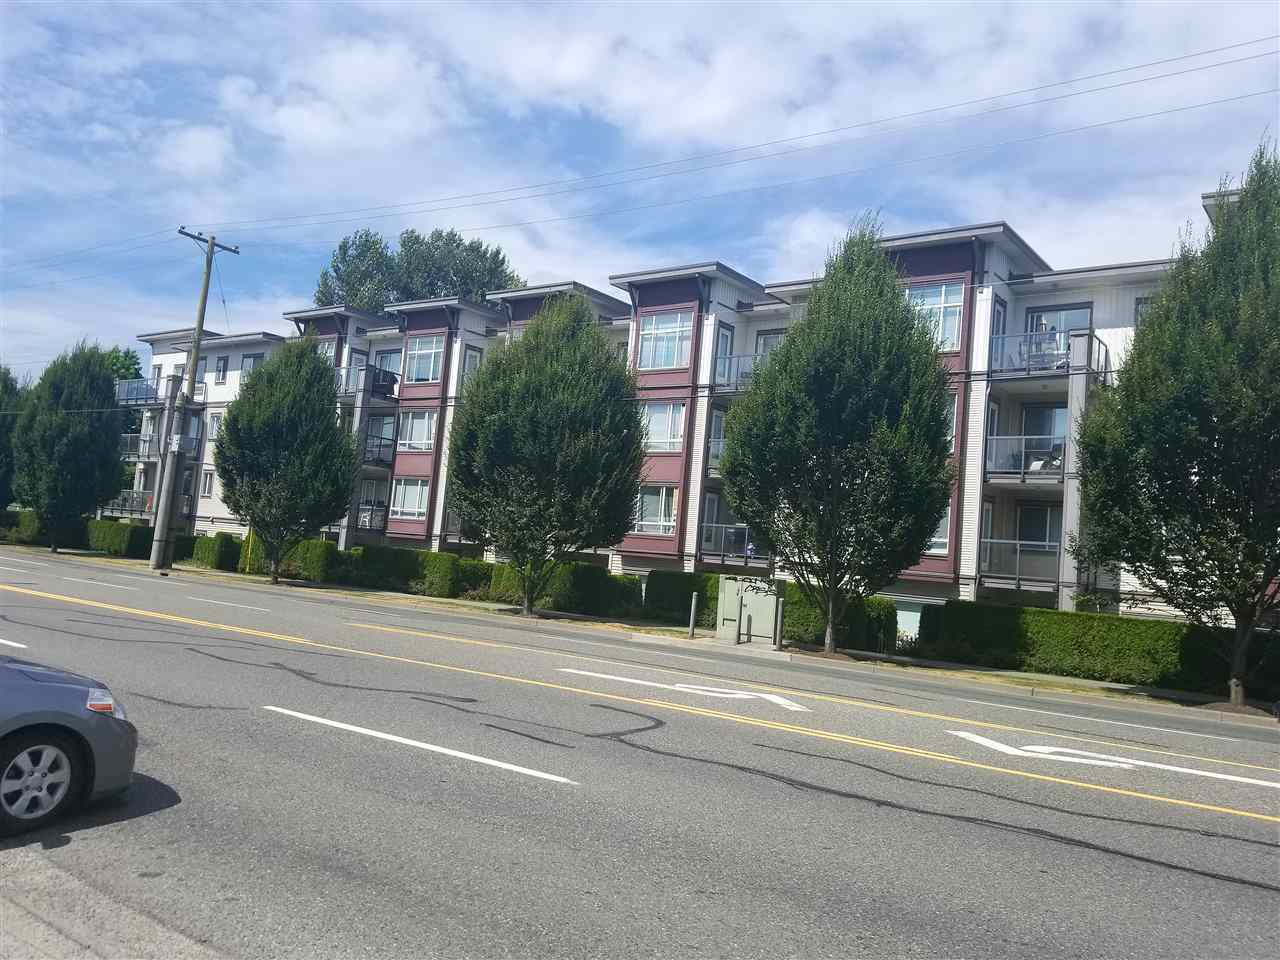 """Main Photo: 214 2943 NELSON Place in Abbotsford: Central Abbotsford Condo for sale in """"EDGEBROOK"""" : MLS®# R2190827"""